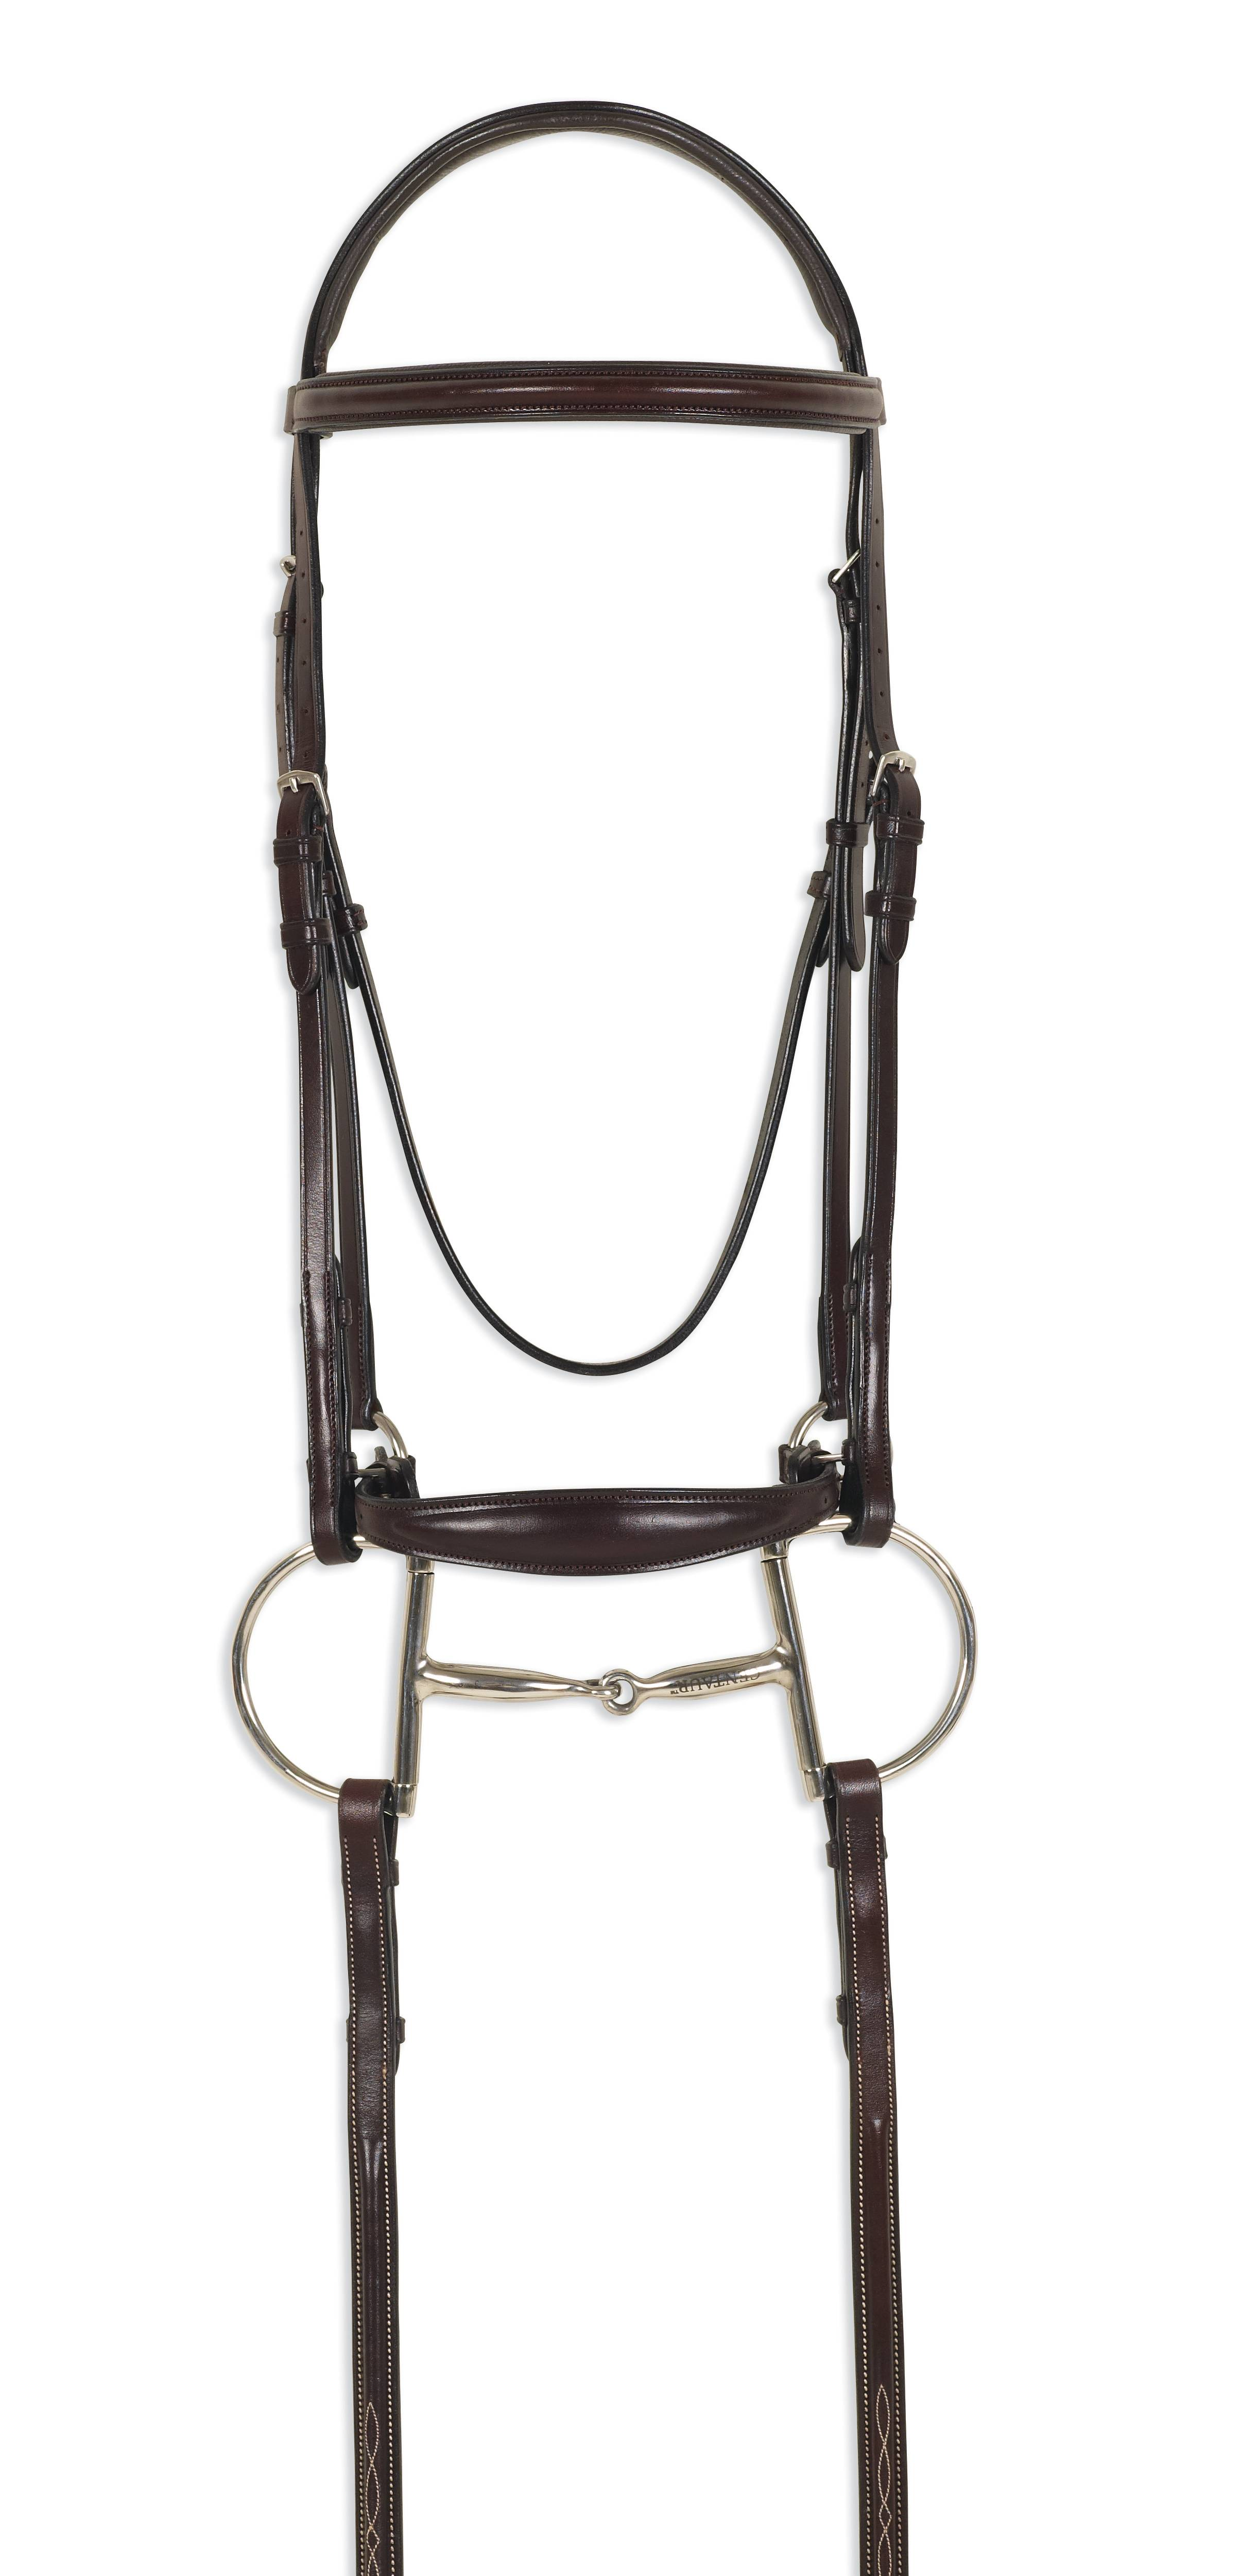 Ovation ATS Round Raised Plain Drop Nose Bridle